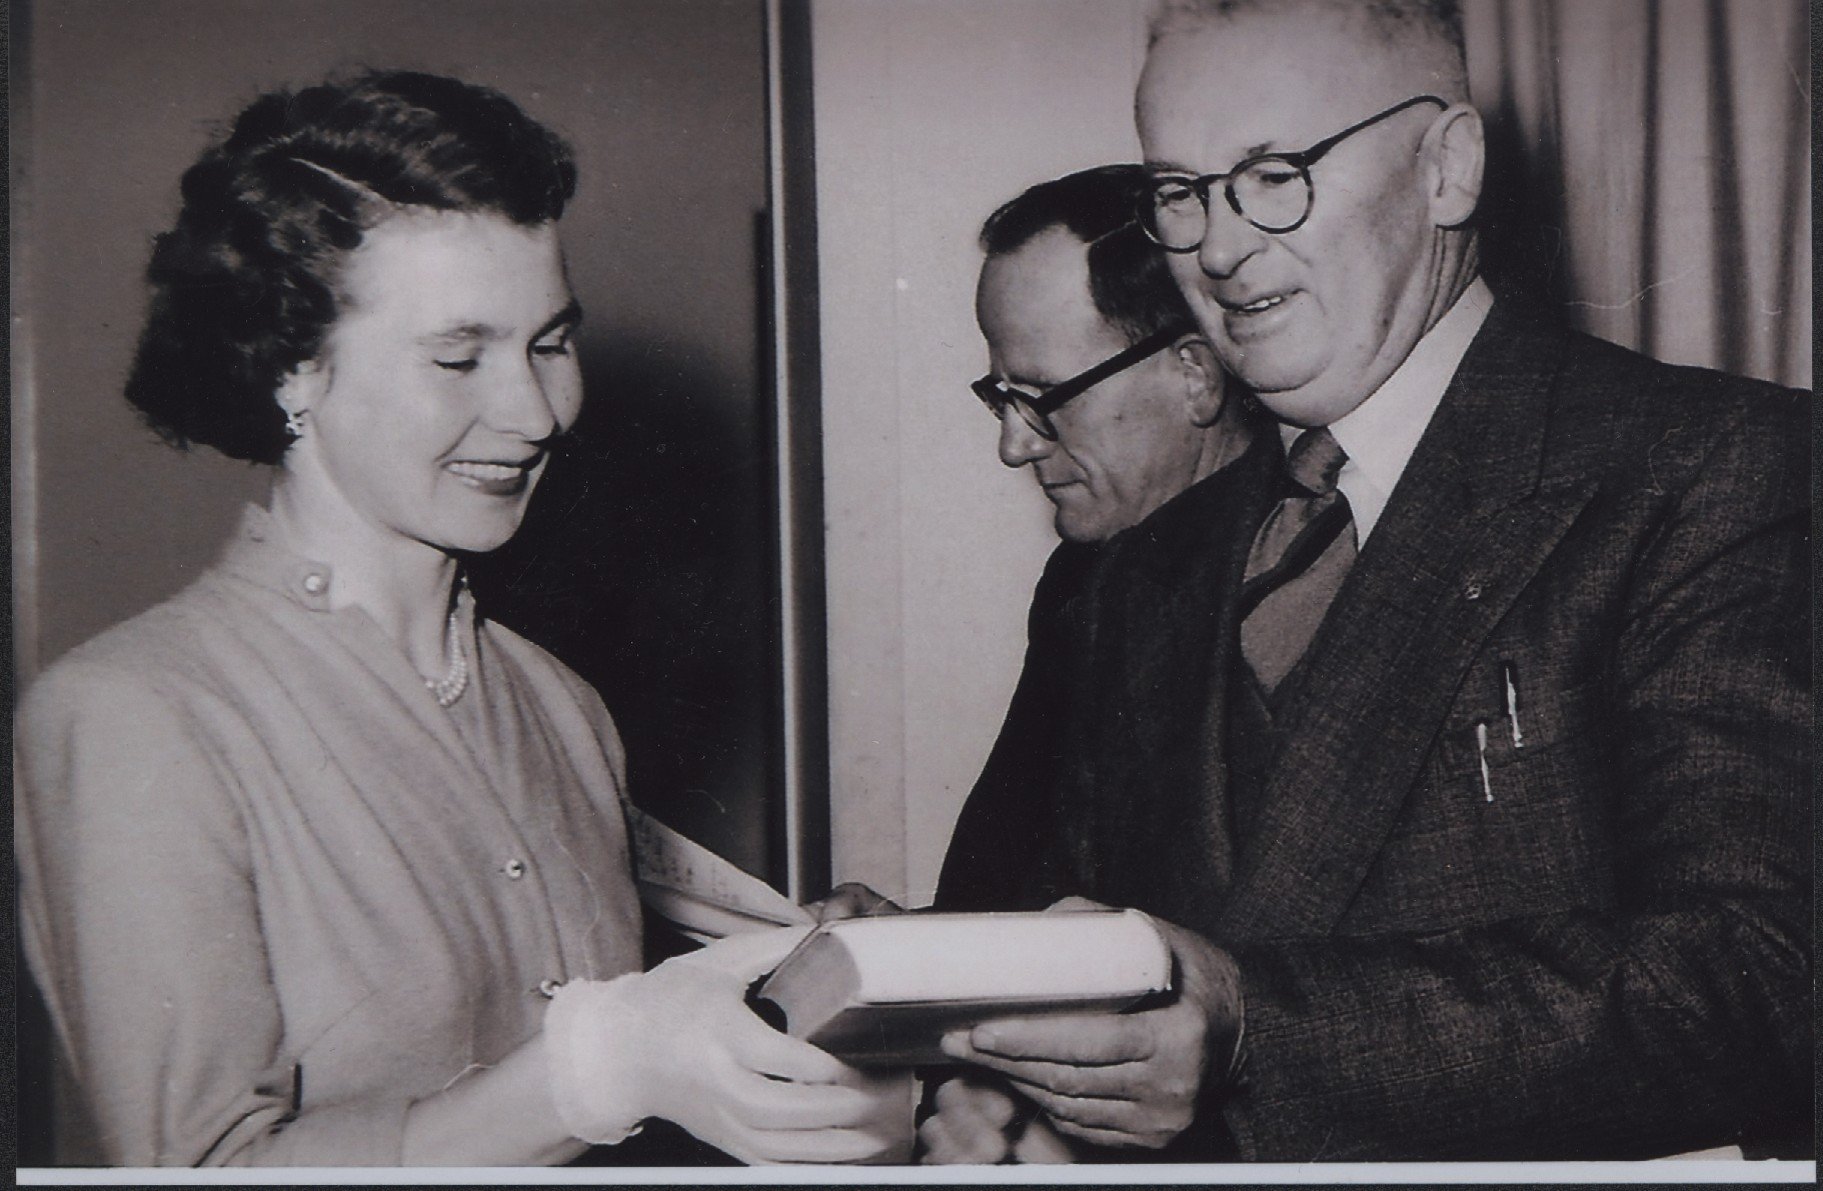 Mira Galvin receiving award for her wool classing examinations. Photo: supplied by Aileen Spangaro.